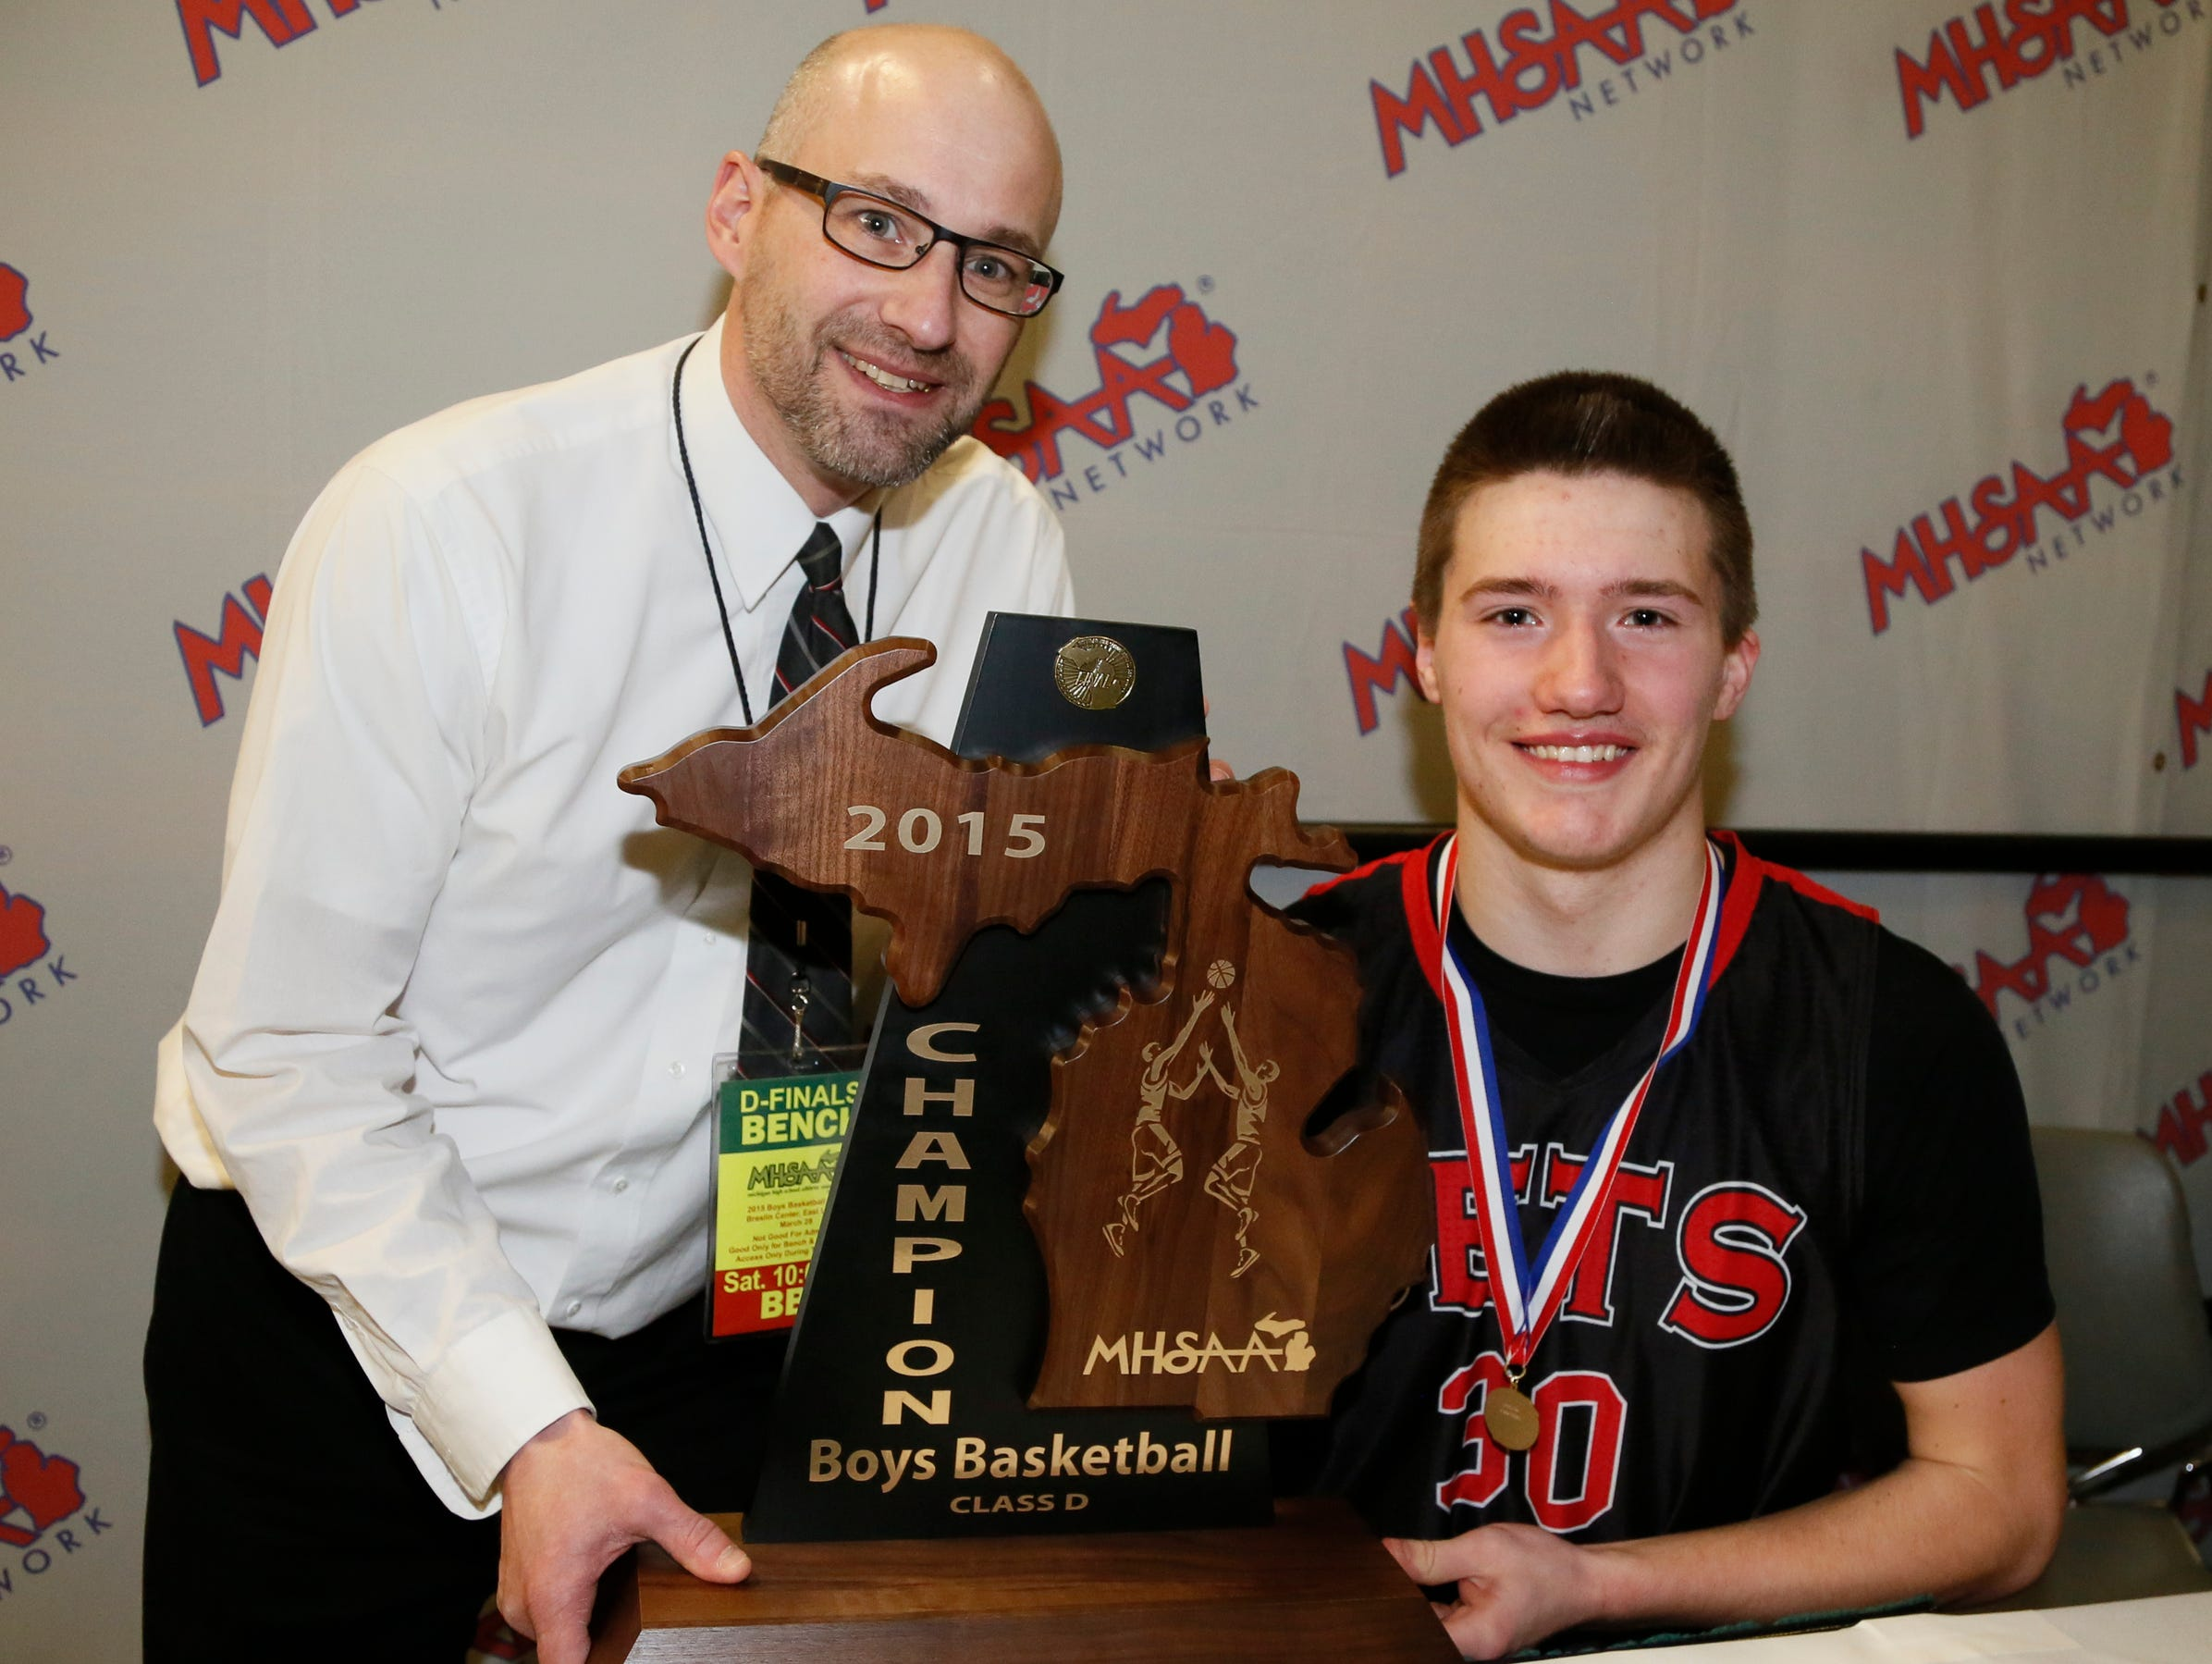 Powers North Central's Jason Whitens, with the Class D championship trophy on Saturday, March 28, 2015 in East Lansing, poses with his father, Gerald Whitens, who was on Powers North Central's championship team in 1984.